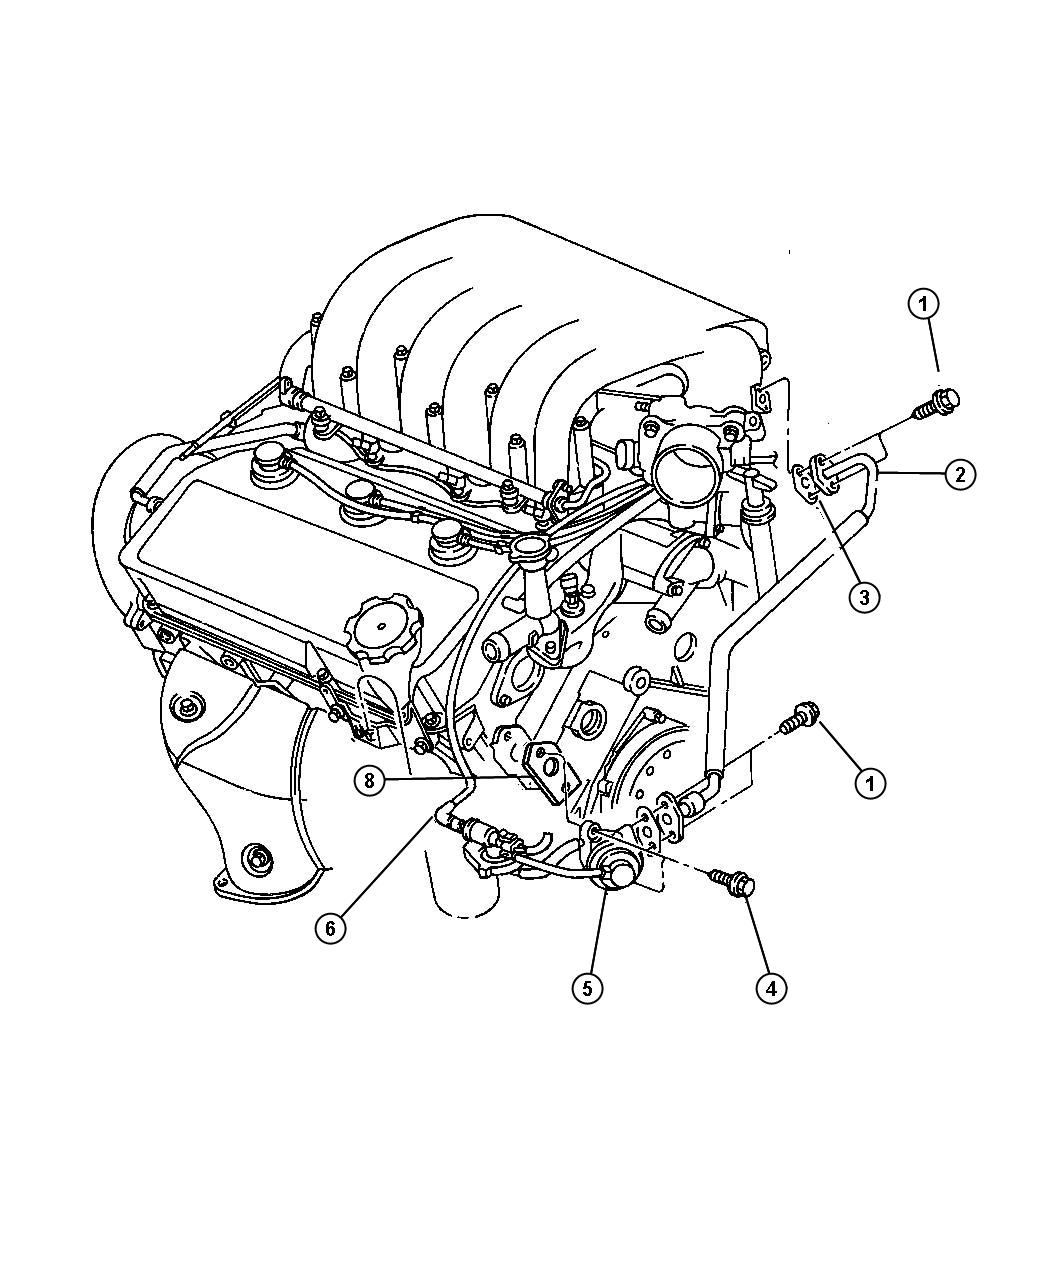 Chrysler Cirrus Egr System 2 5l Engine